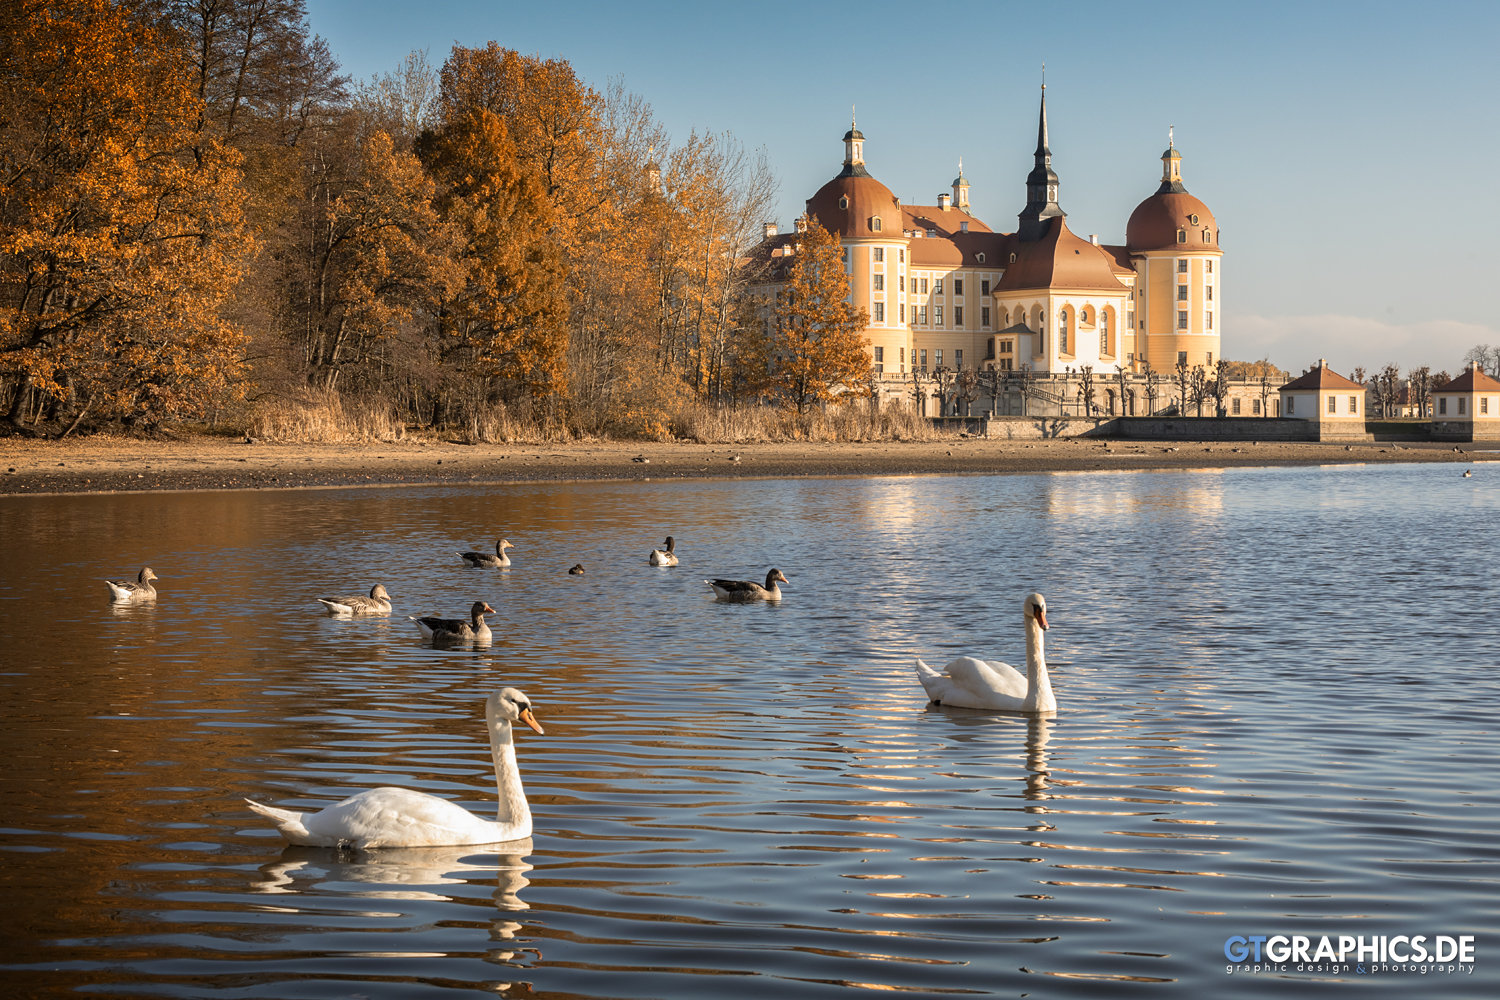 Postcard from Moritzburg